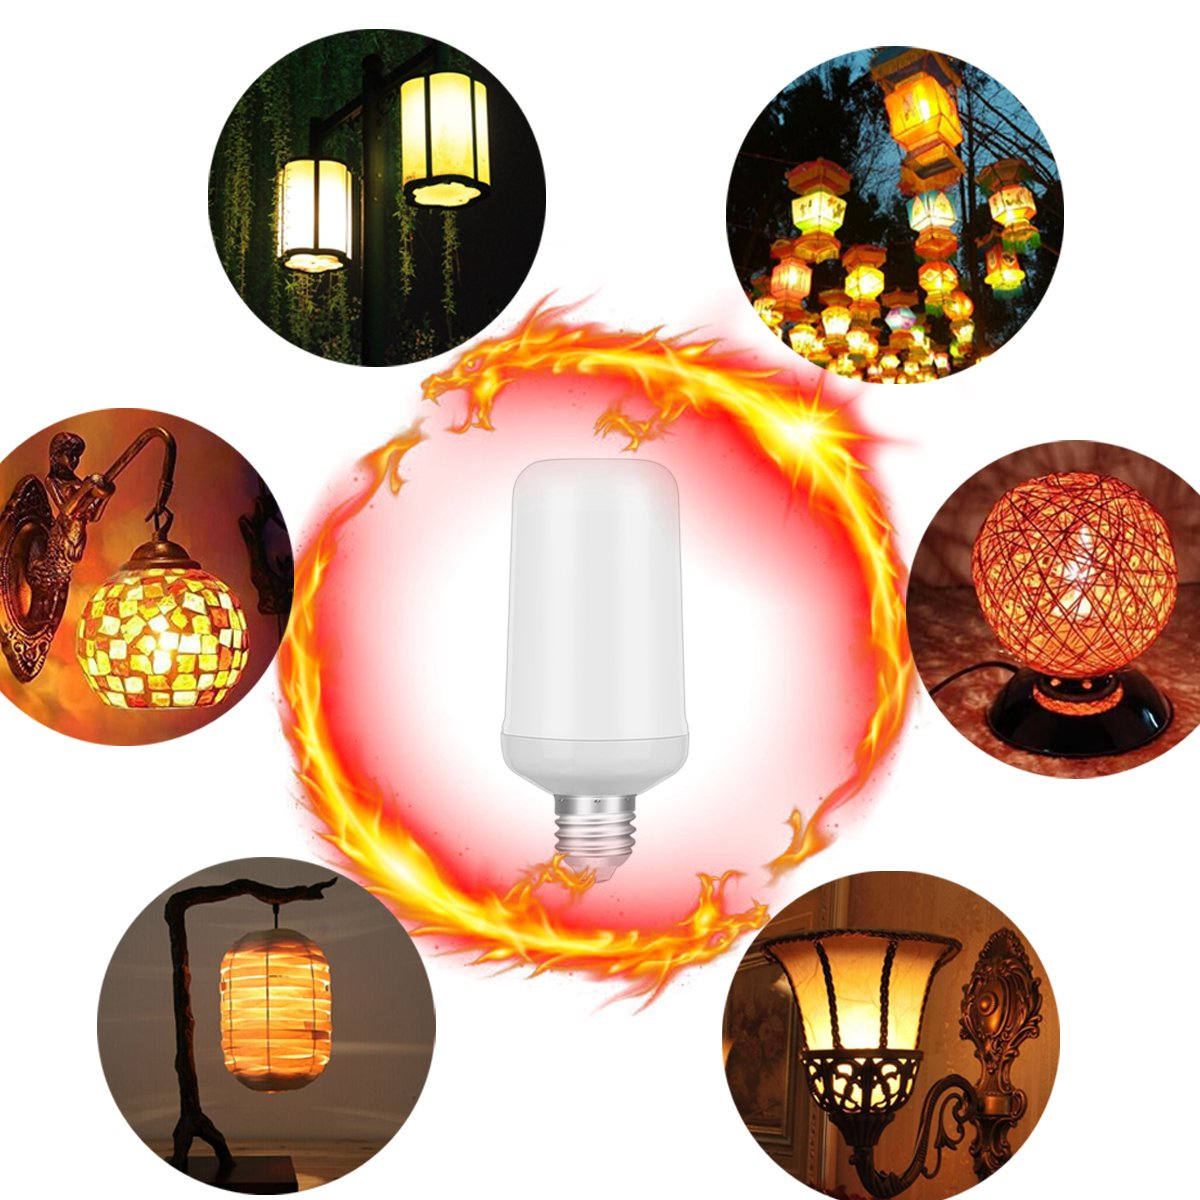 Warmoon LED Flame Light Bulbs E26 Base Flame Lamp True Fire Color Atmosphere Lighting Led Flame Effect Light Bulb for Home Hotel Bar Halloween Christmas Festival Decorations (Upside Down Available)